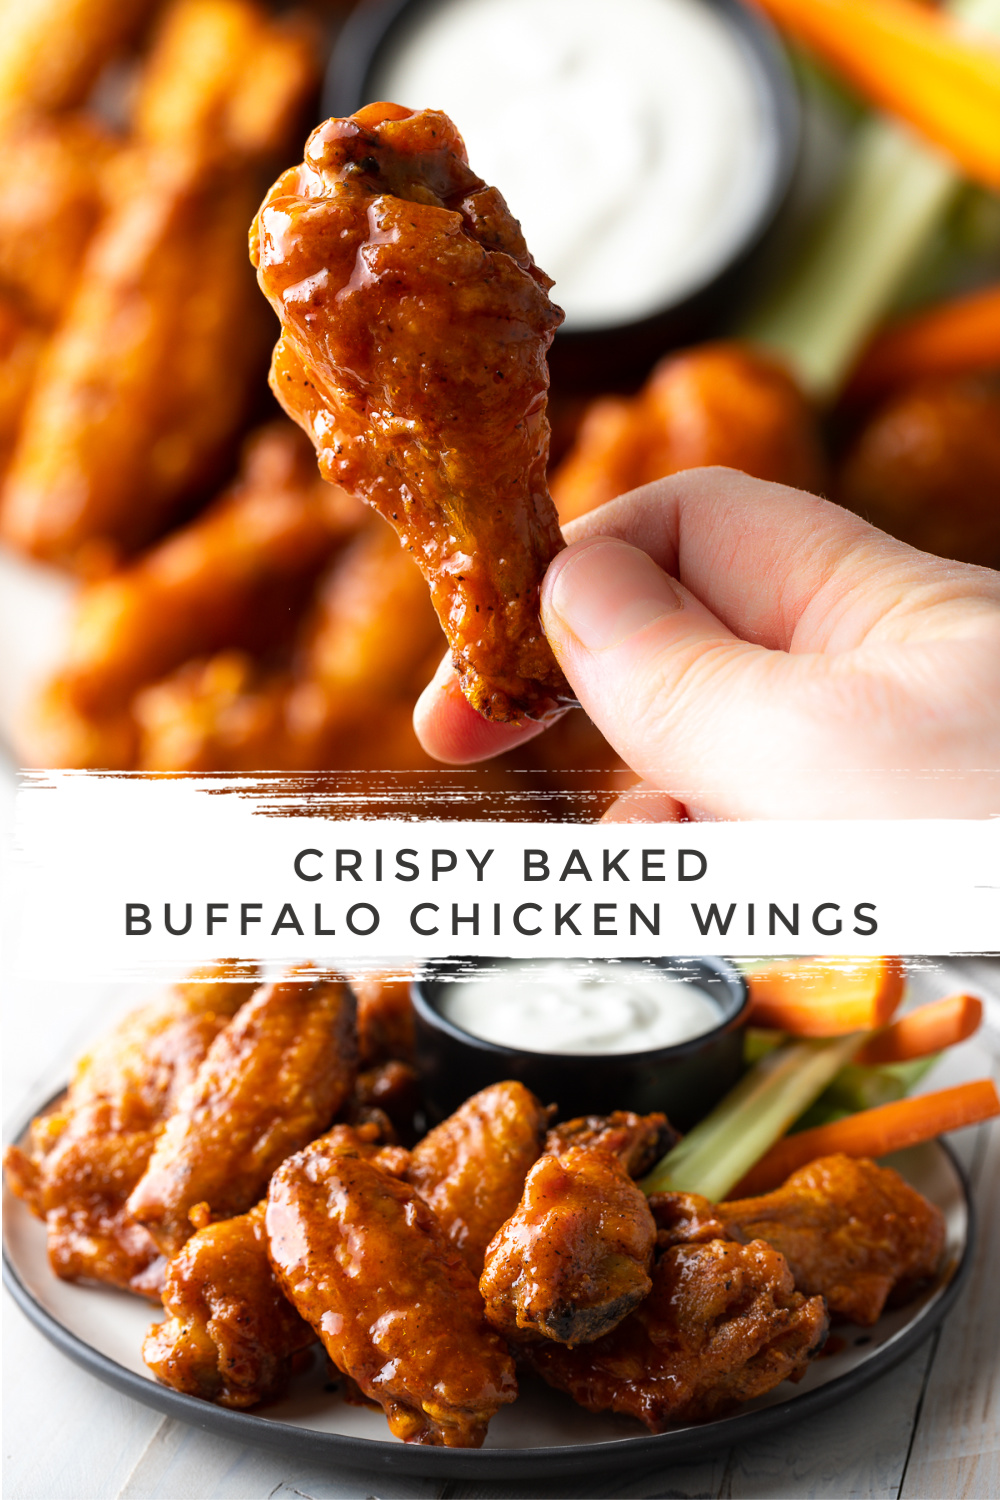 Crispy Baked Buffalo Wings Recipe: Learn How to Make the BEST Baked Chicken Wings in the Oven! This Hot Wings Recipe + Sauce is SO delicious! #ASpicyPerspective #chicken #wings #hot #buffalo #baked #crispy #best #superbowl #party